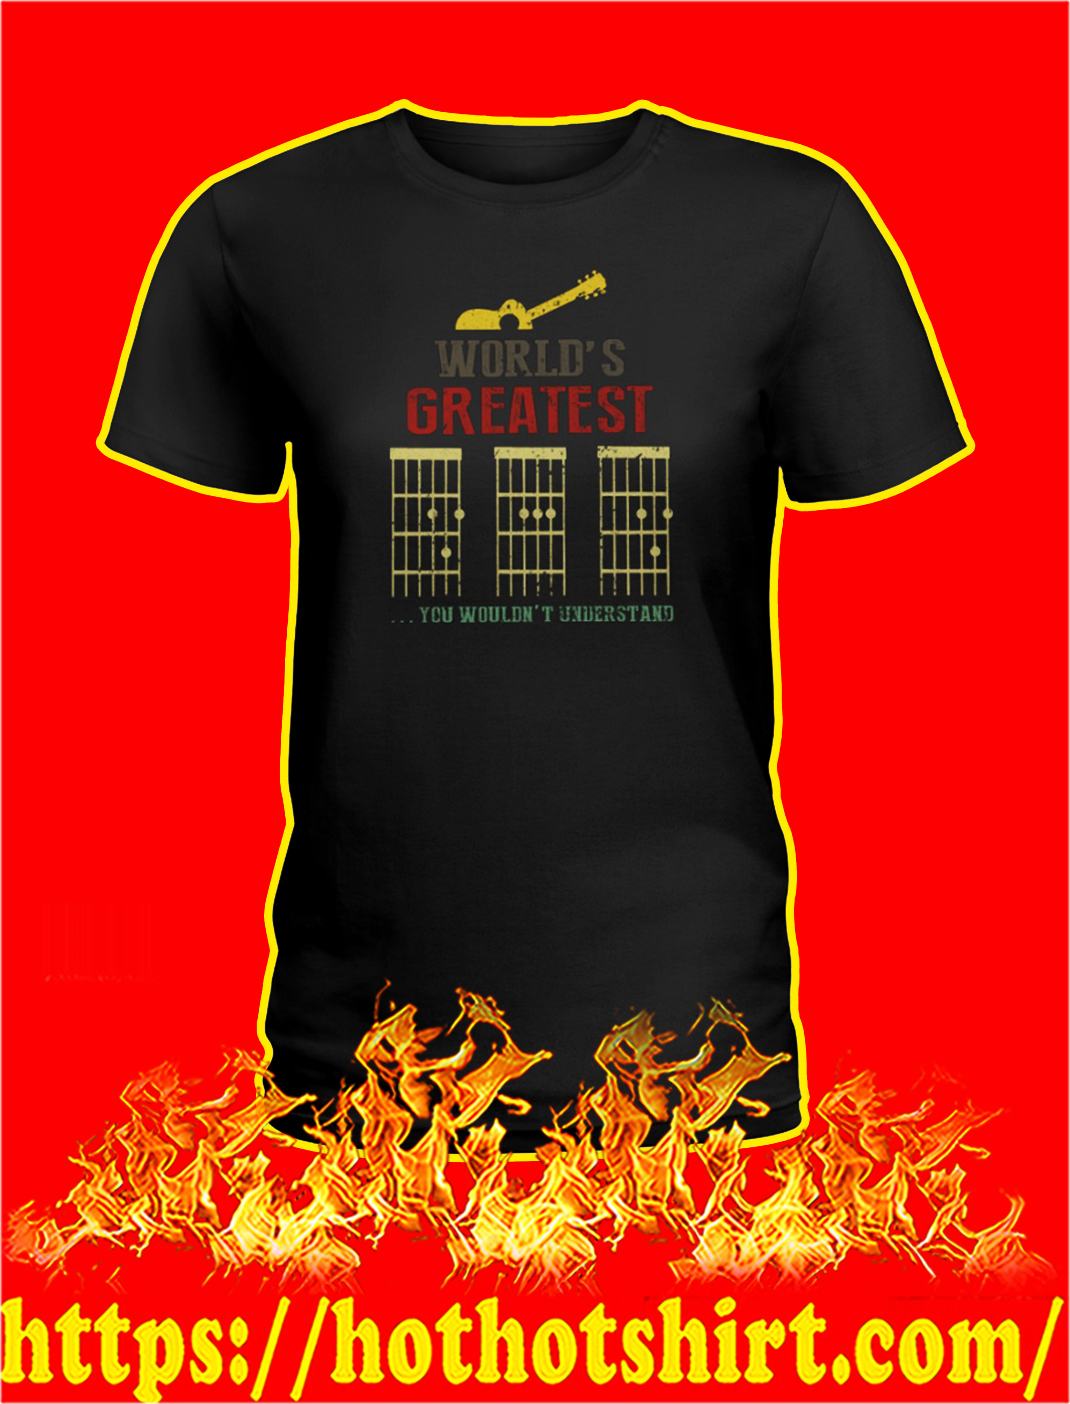 Guitar dad World's greatest you wouldn't understand lady shirt